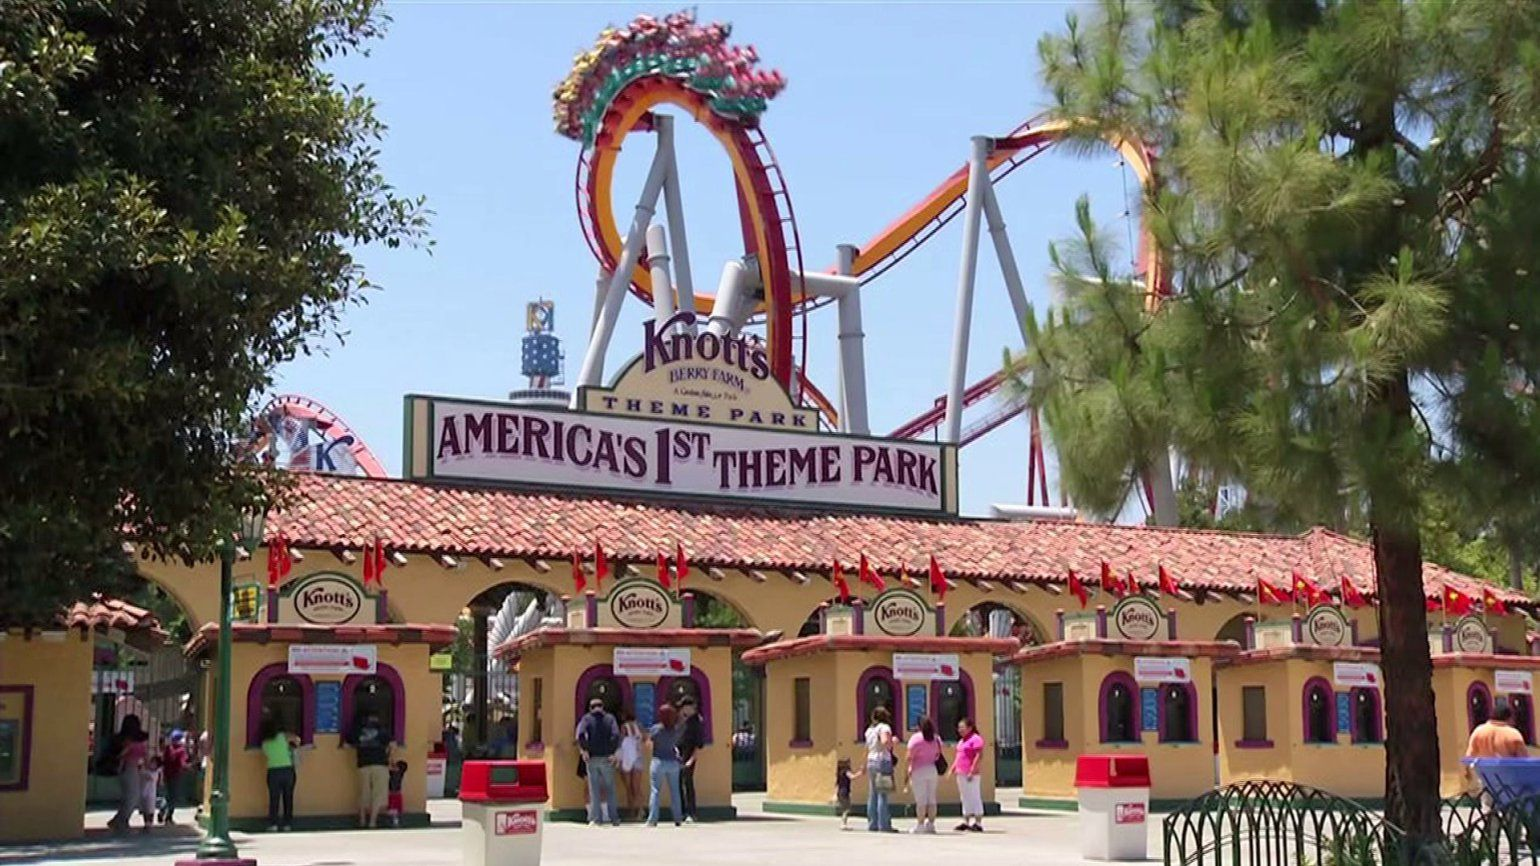 The Entrance To Knott S Berry Farm Theme Park In Buena Park Is